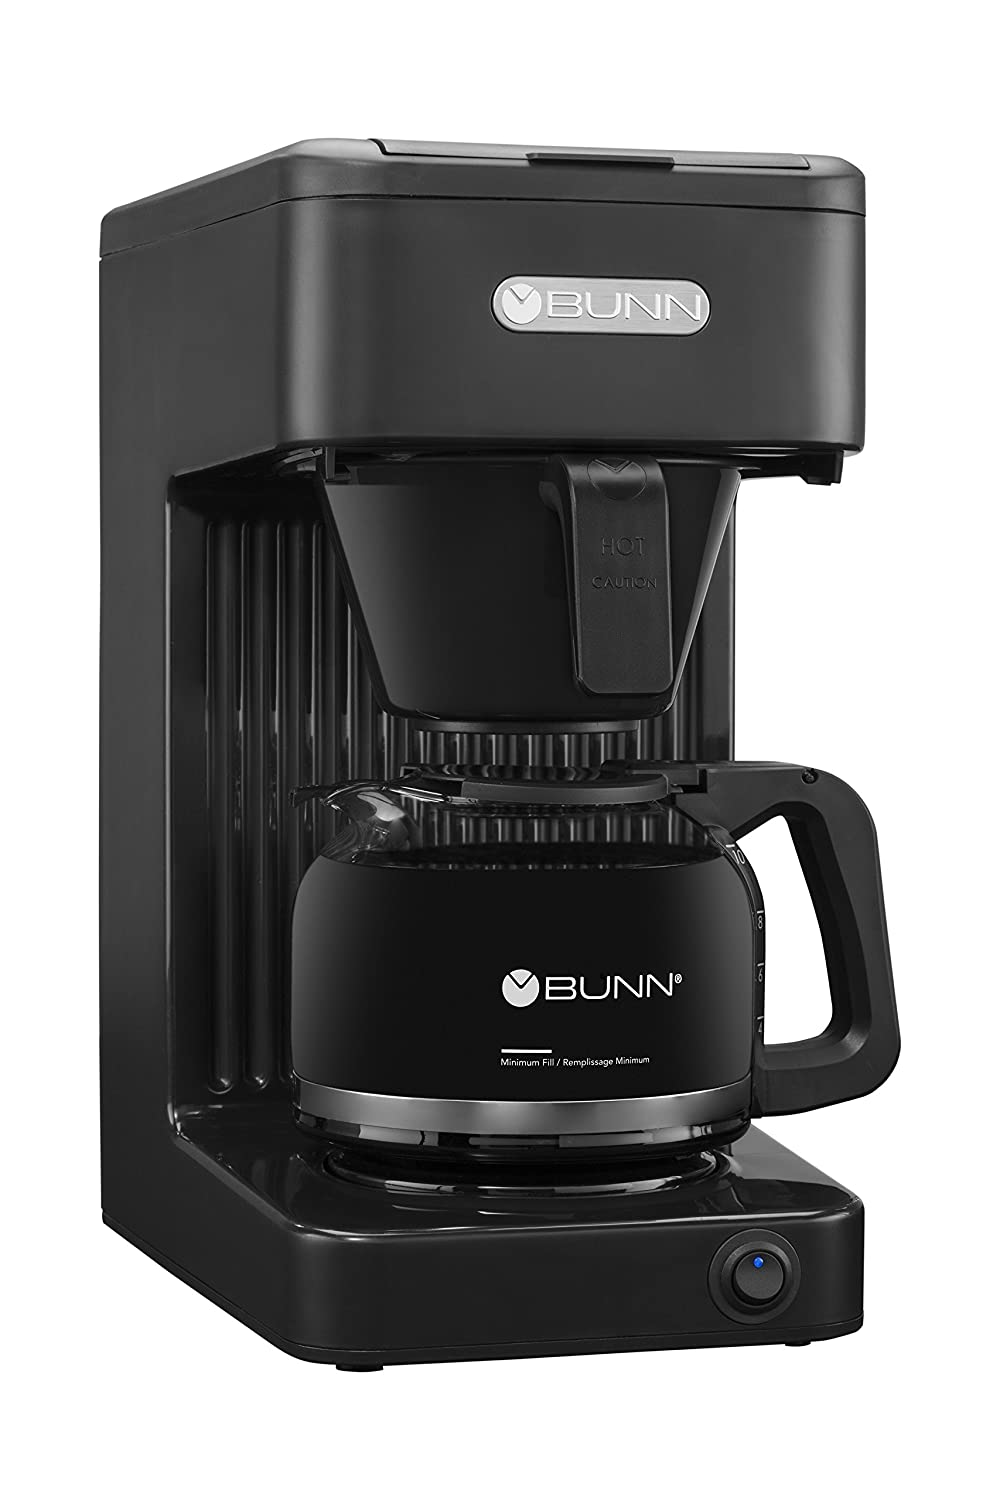 Bunn Btx Diagram For Wiring Schematic Diagrams Vp 17 Trusted Thermal Coffee Maker